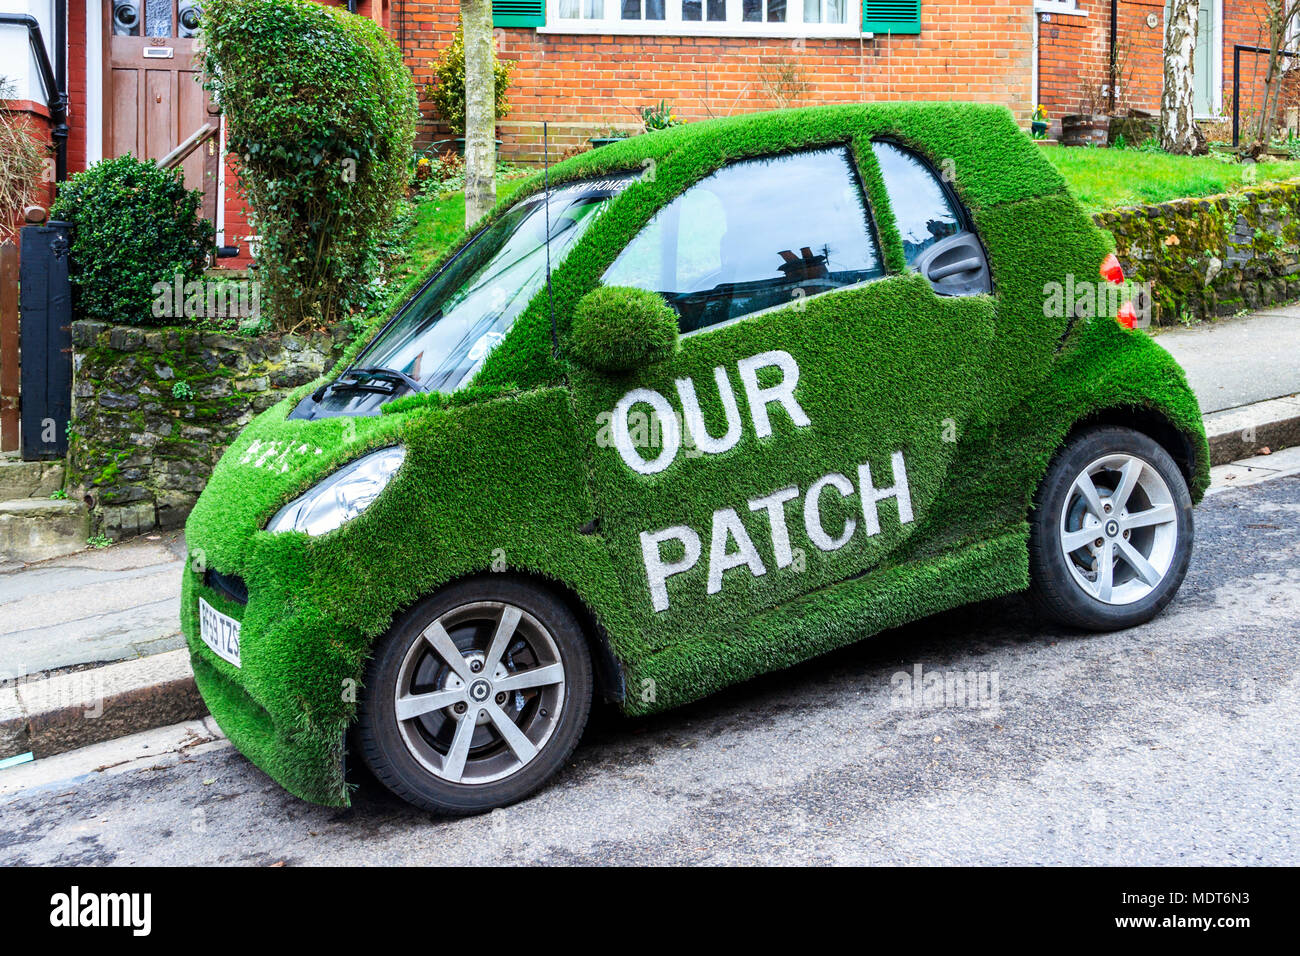 Greene & Co estate agents Smart car wrapped in green artificial grass, with the slogan 'Our Patch', Muswell Hill, London, UK Stock Photo